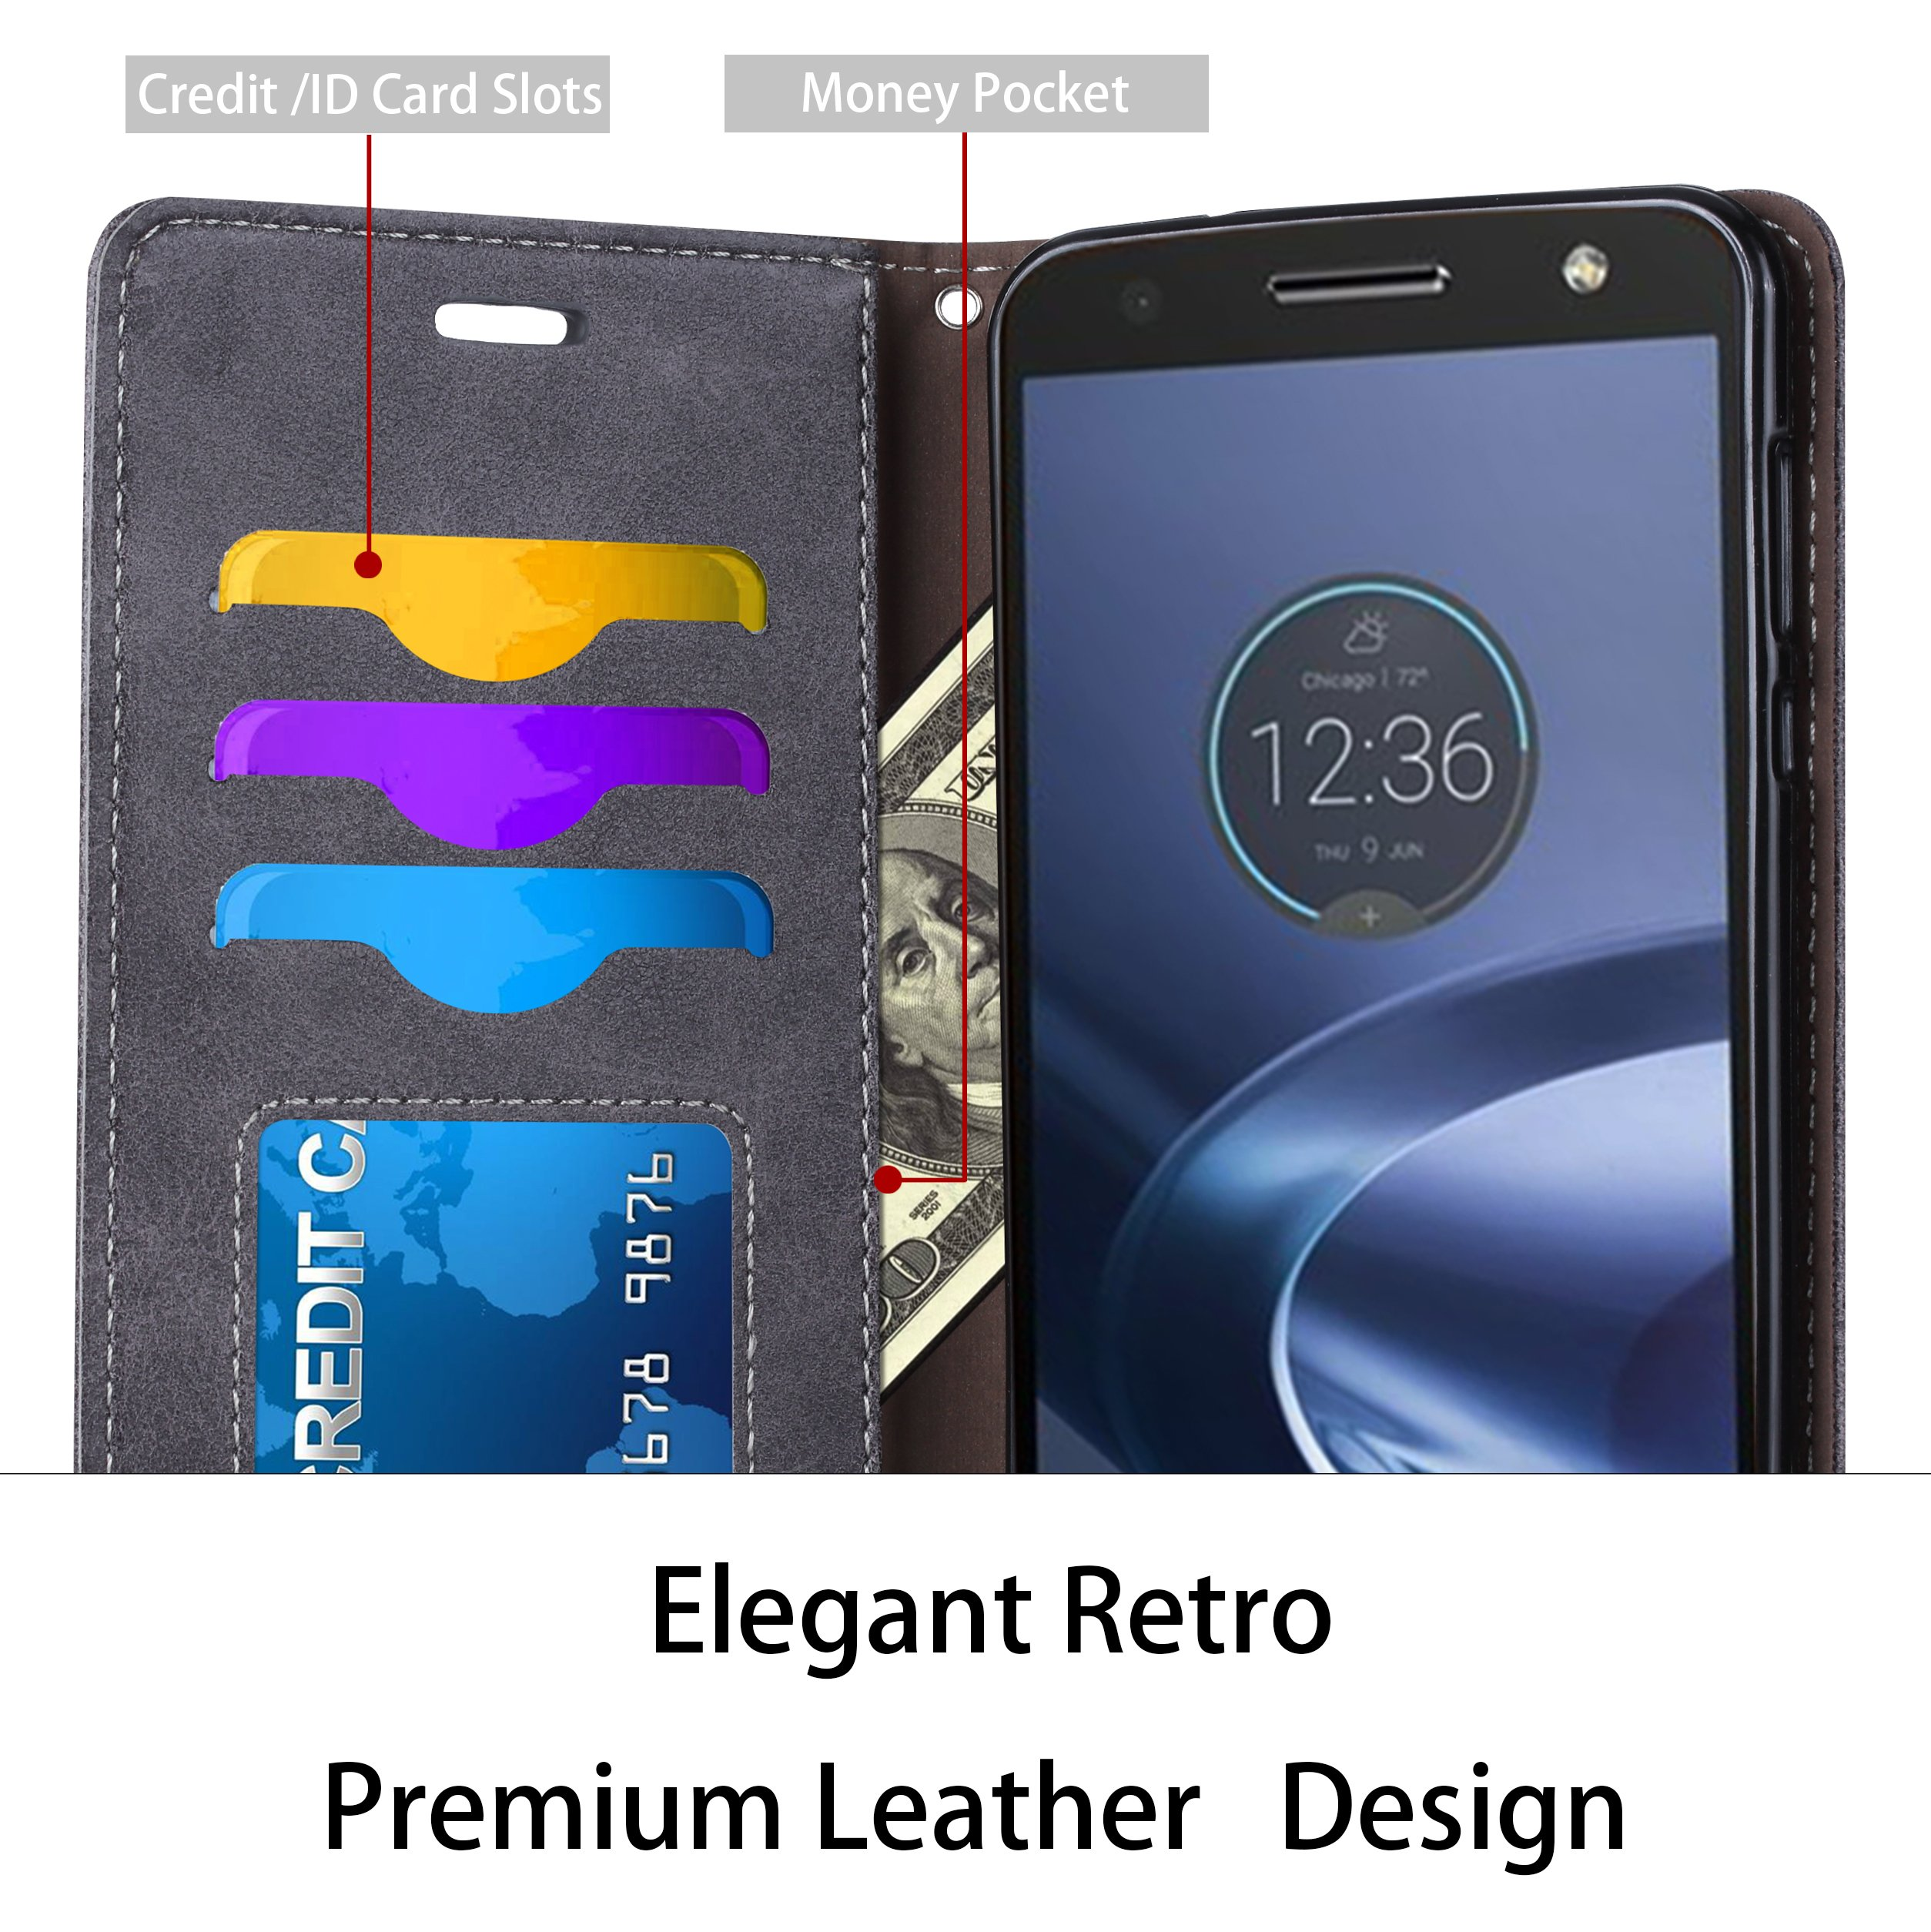 Moto Z2 Force Case, Ferlinso Elegant Retro Leather with ID Credit Card Slot Holder Flip Cover Stand Magnetic Closure Case for Moto Z2 Force/Moto Z Force 2nd Generation-Gray